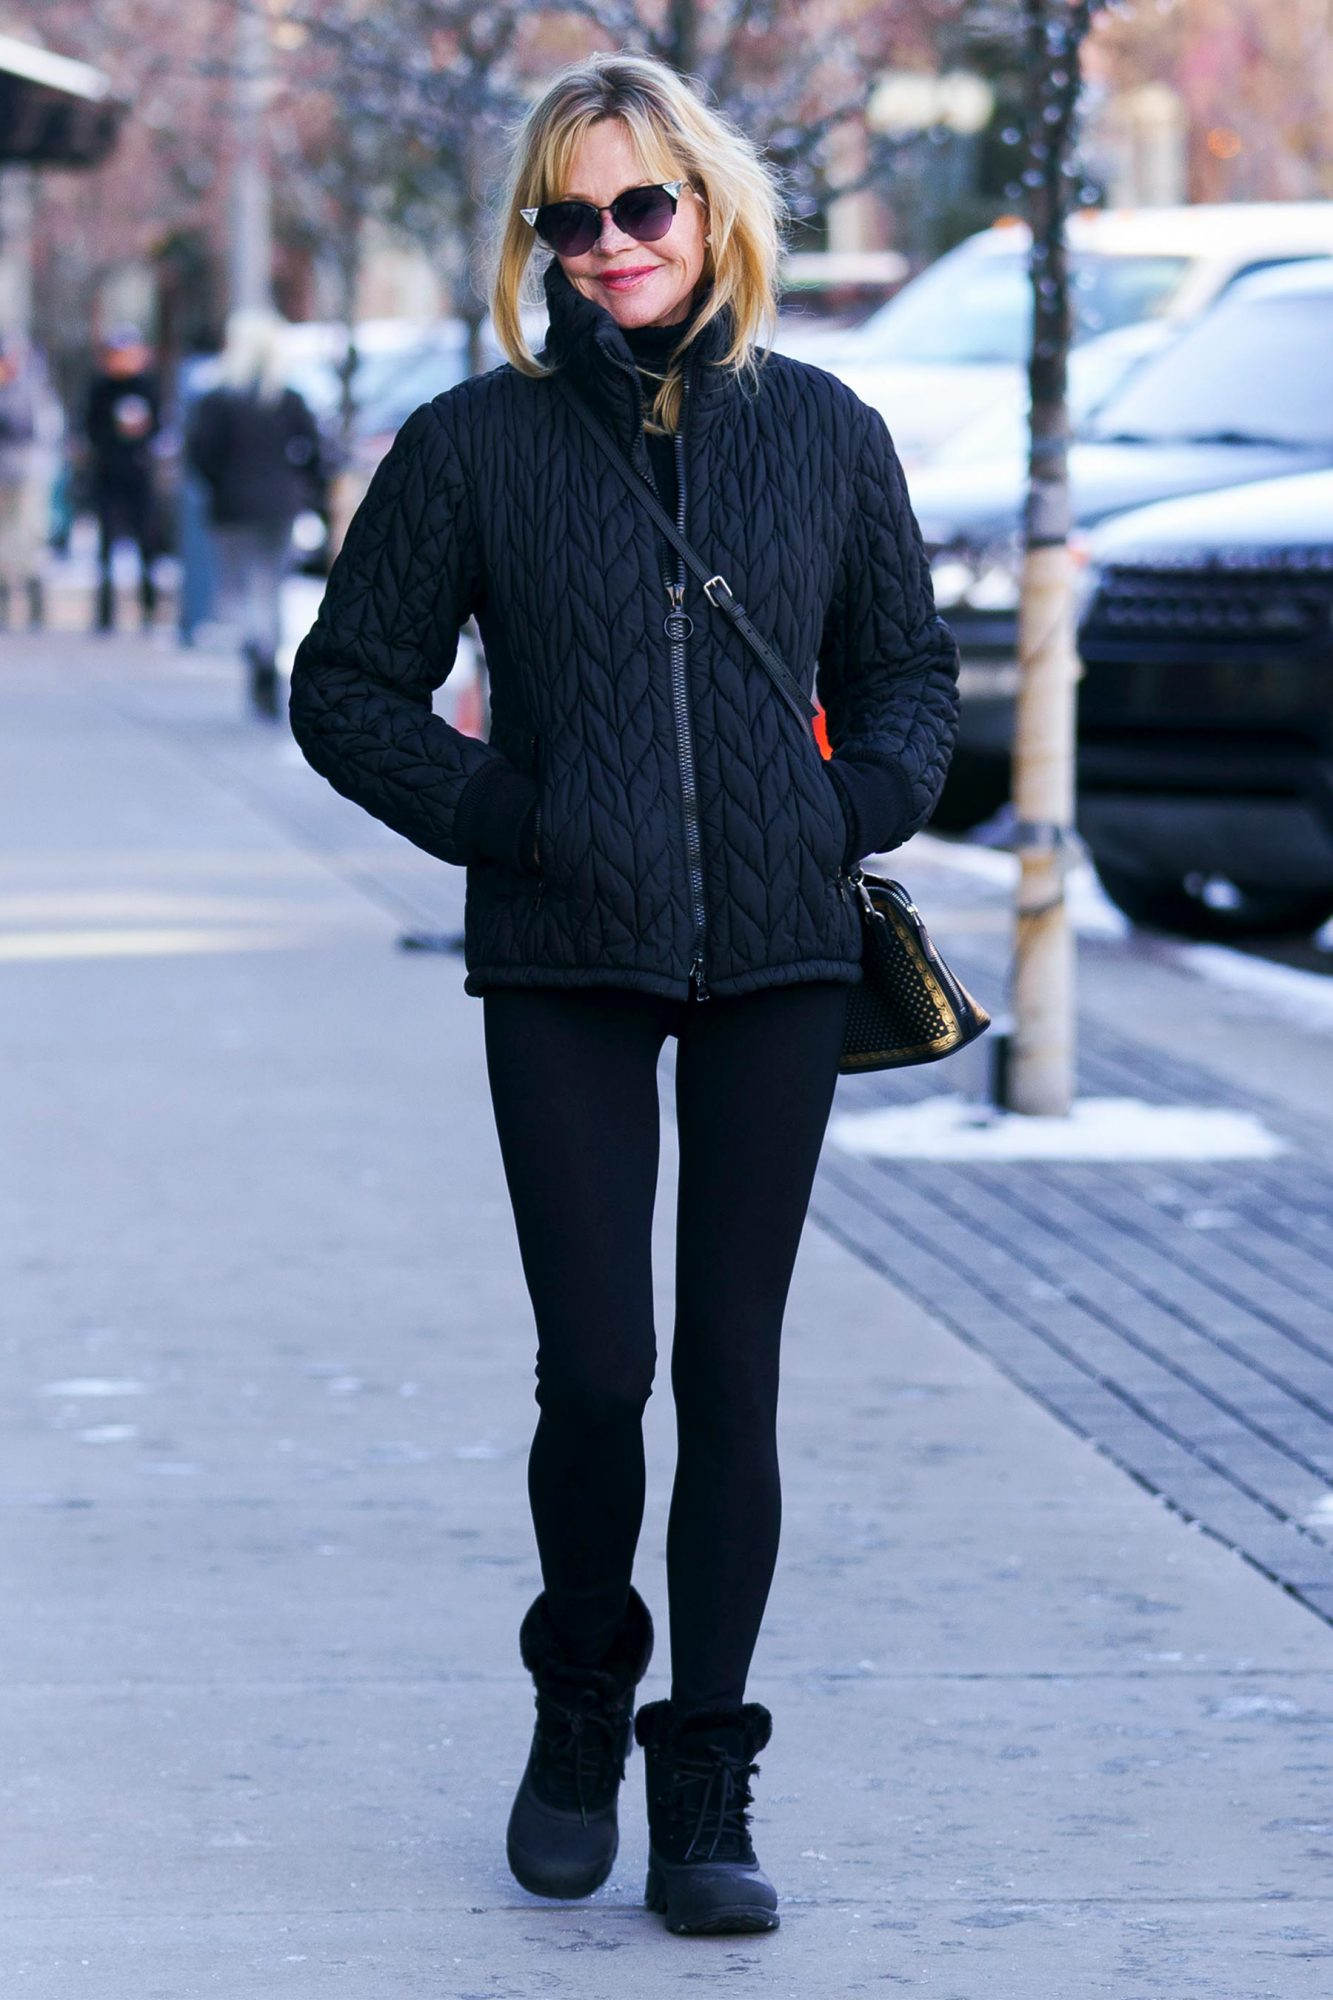 Melanie Griffith and Stella Banderas go for last minute Christmas shopping at James Perse in Aspen, Colorado.